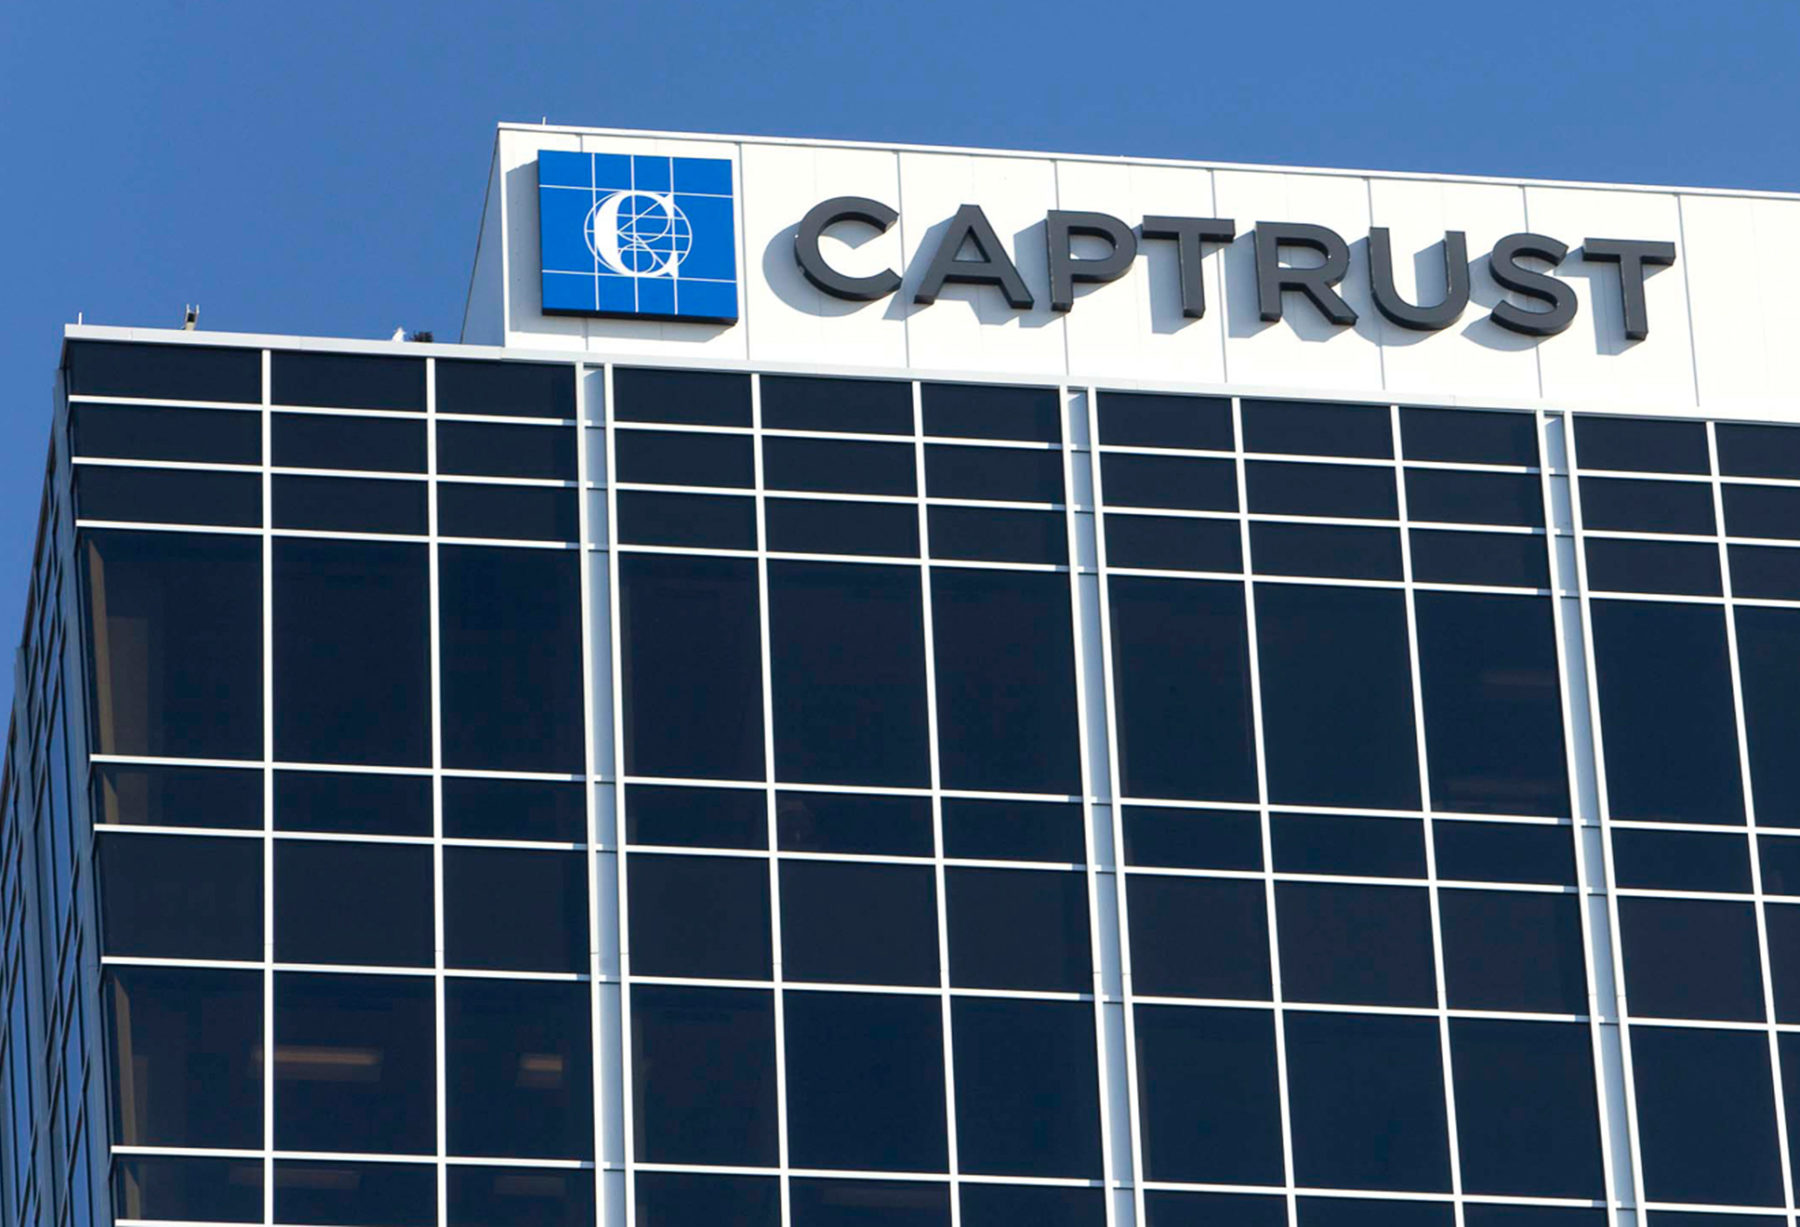 Captrust Sign